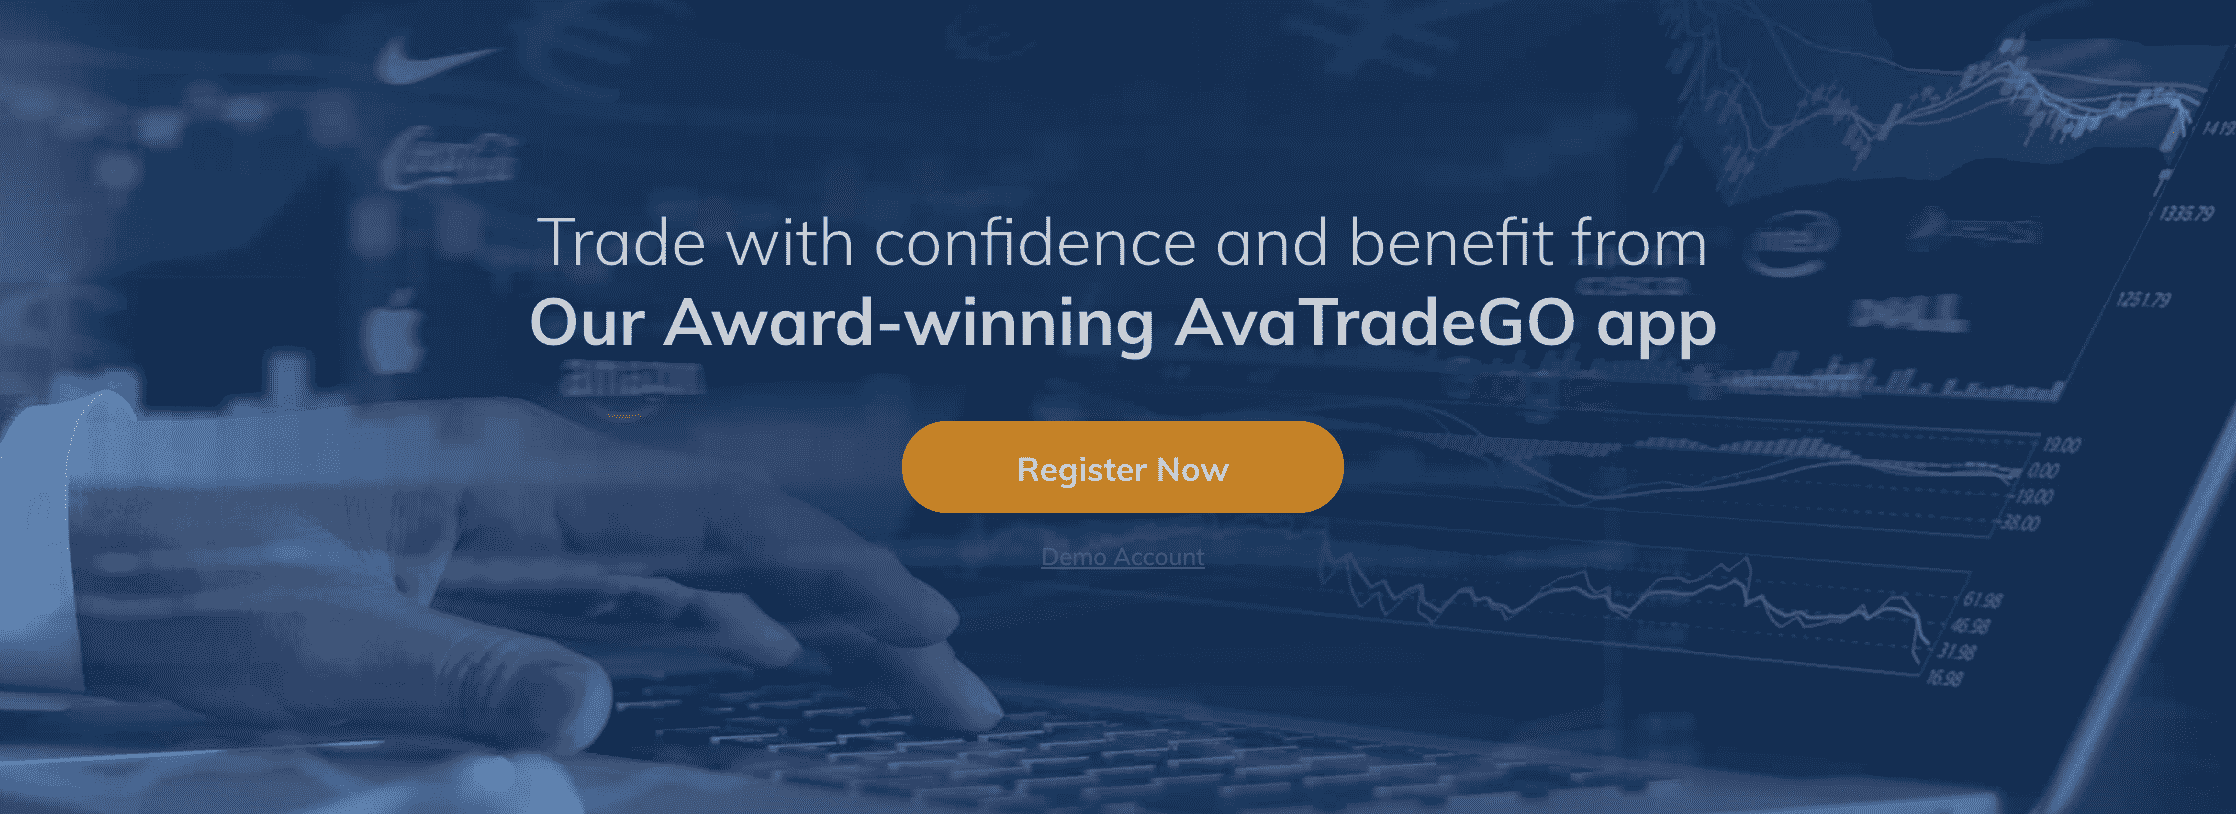 avatrade best broker for cryptocurrency for high leverage